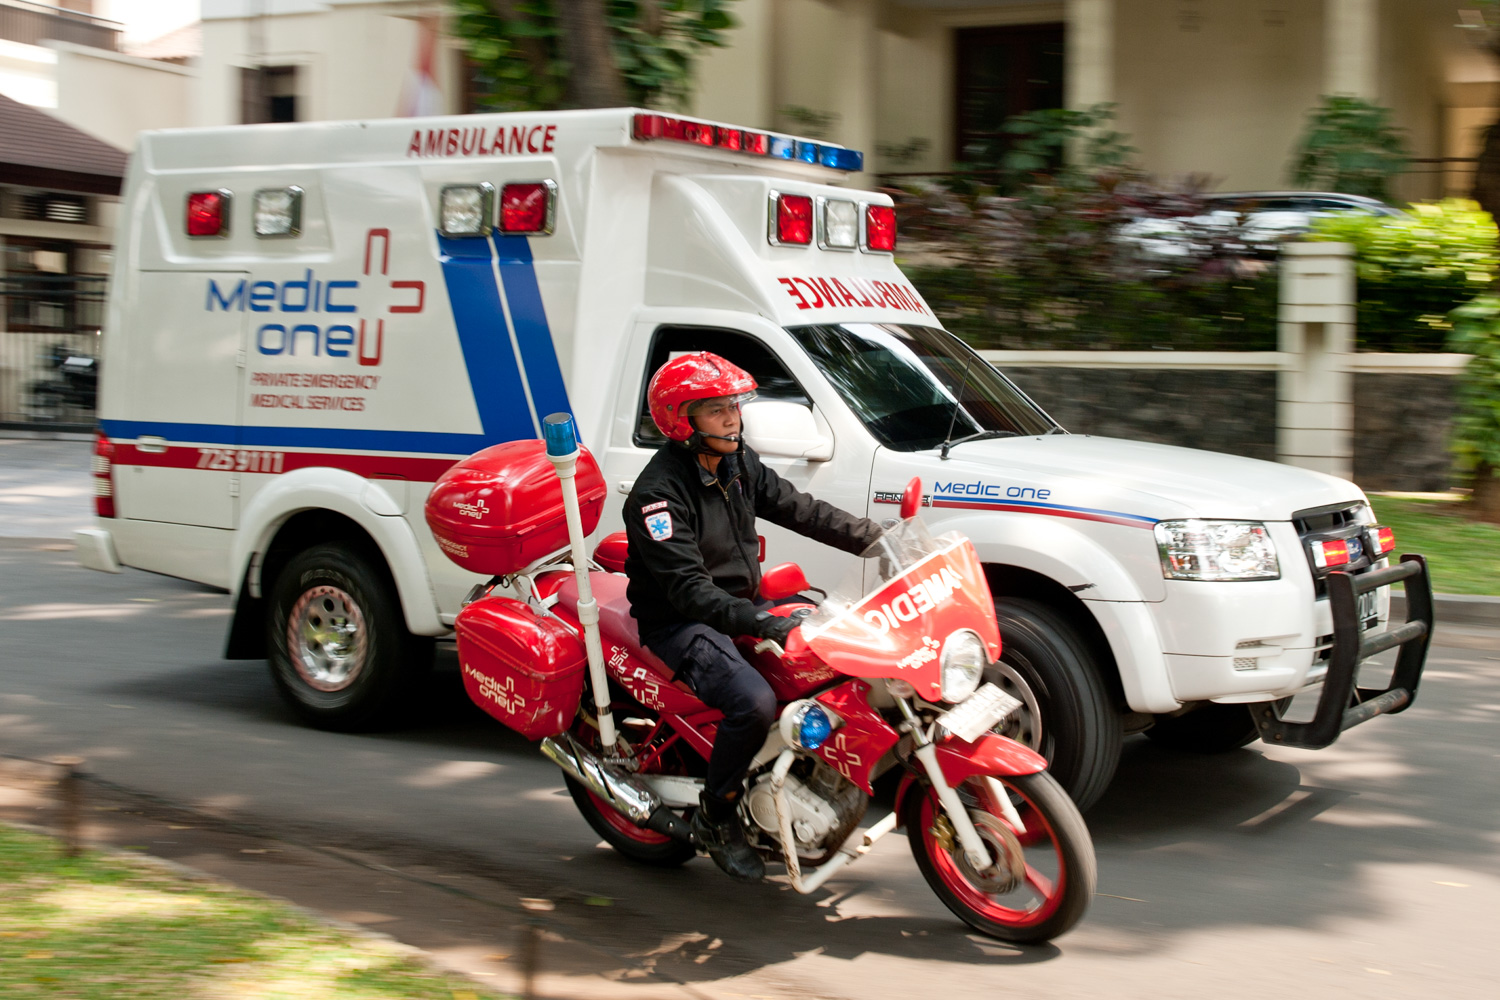 Medic One Service photography